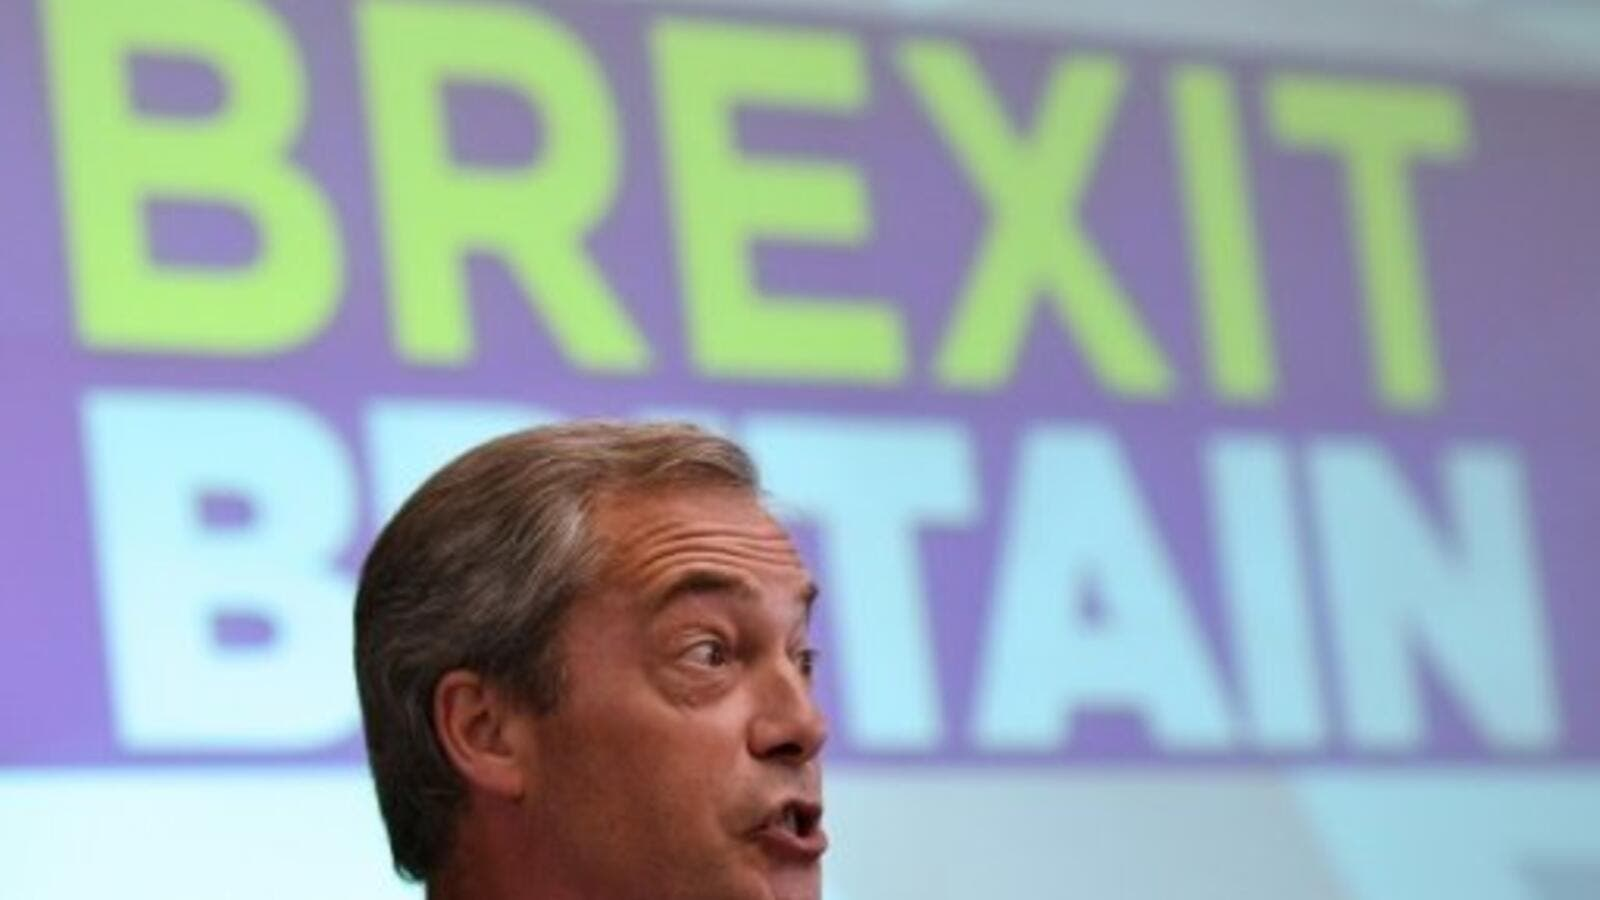 Former UKIP leader Nigel Farage (AFP/Alice Ritchie)